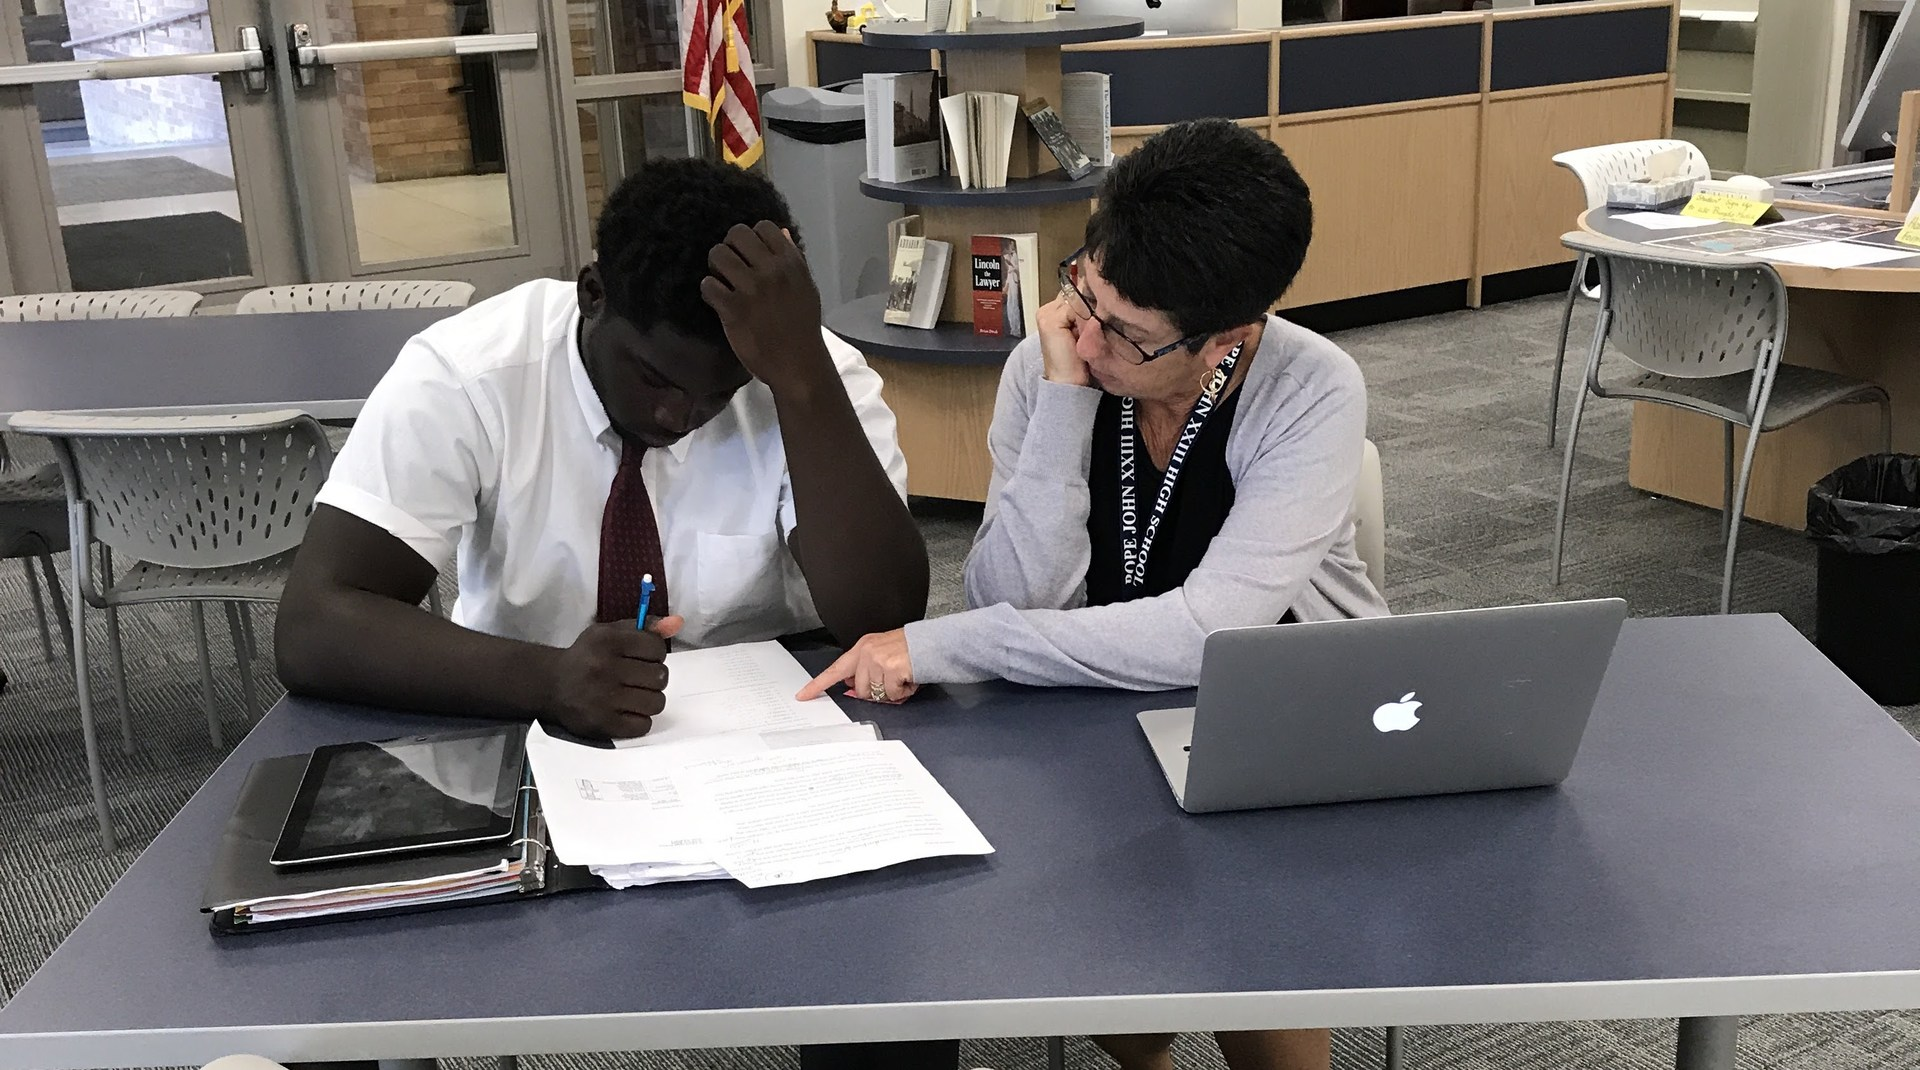 Media specialist helping student